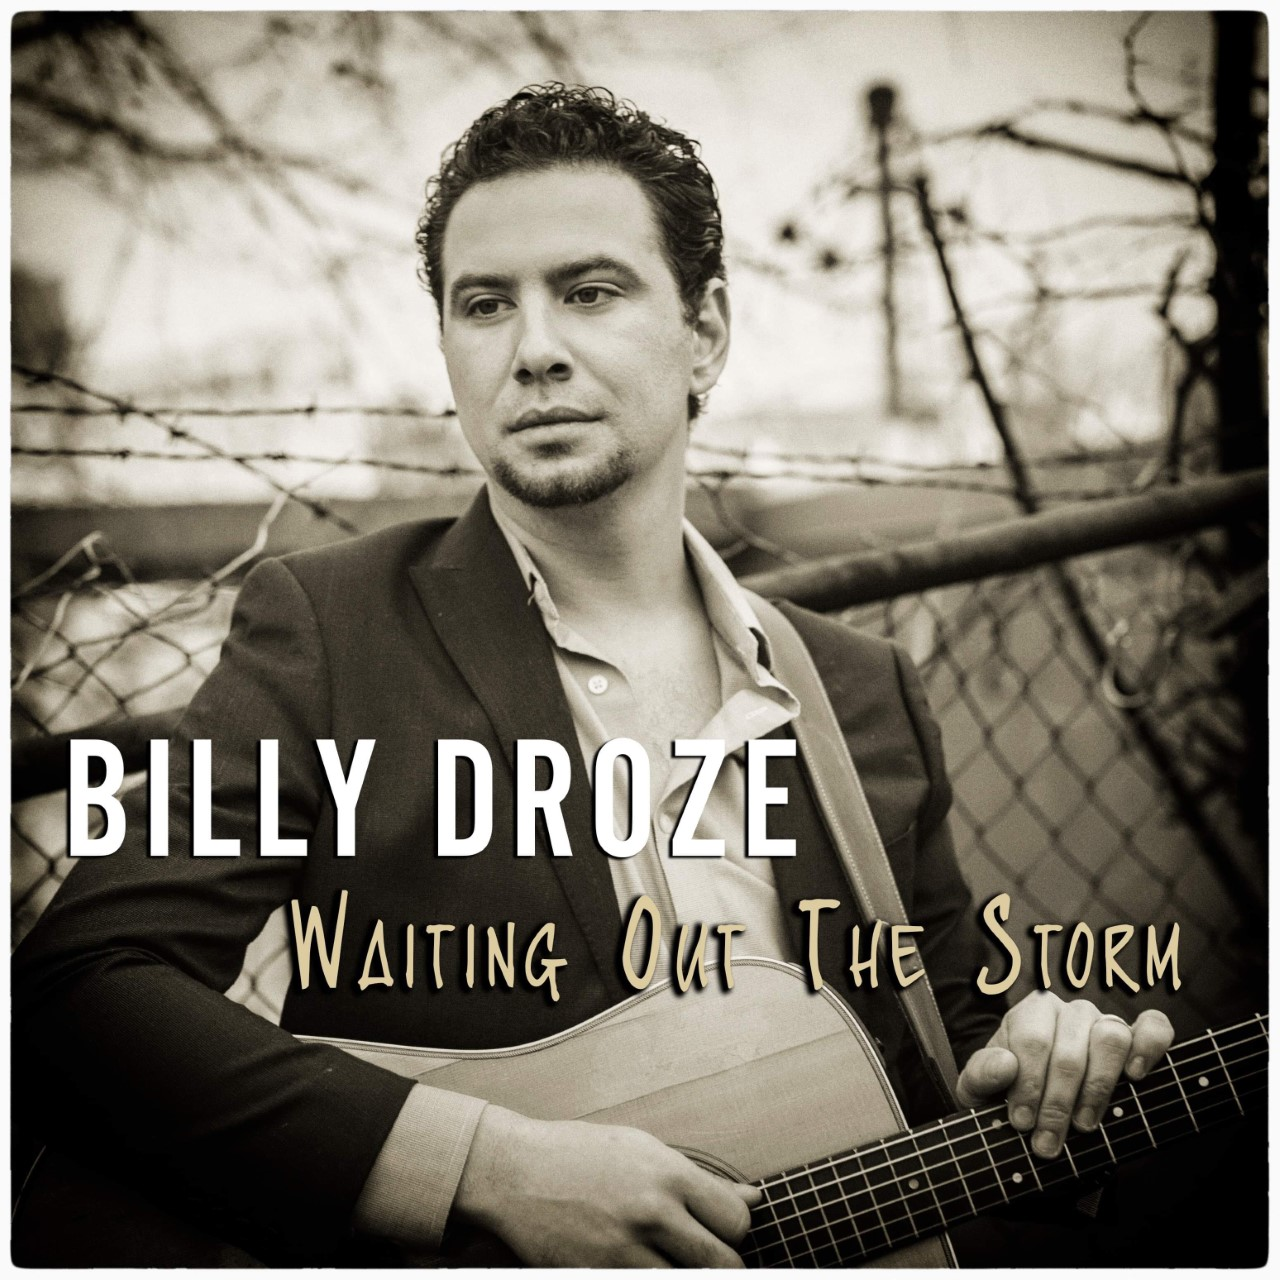 Billy Droze Waiting Out The Storm Single Art